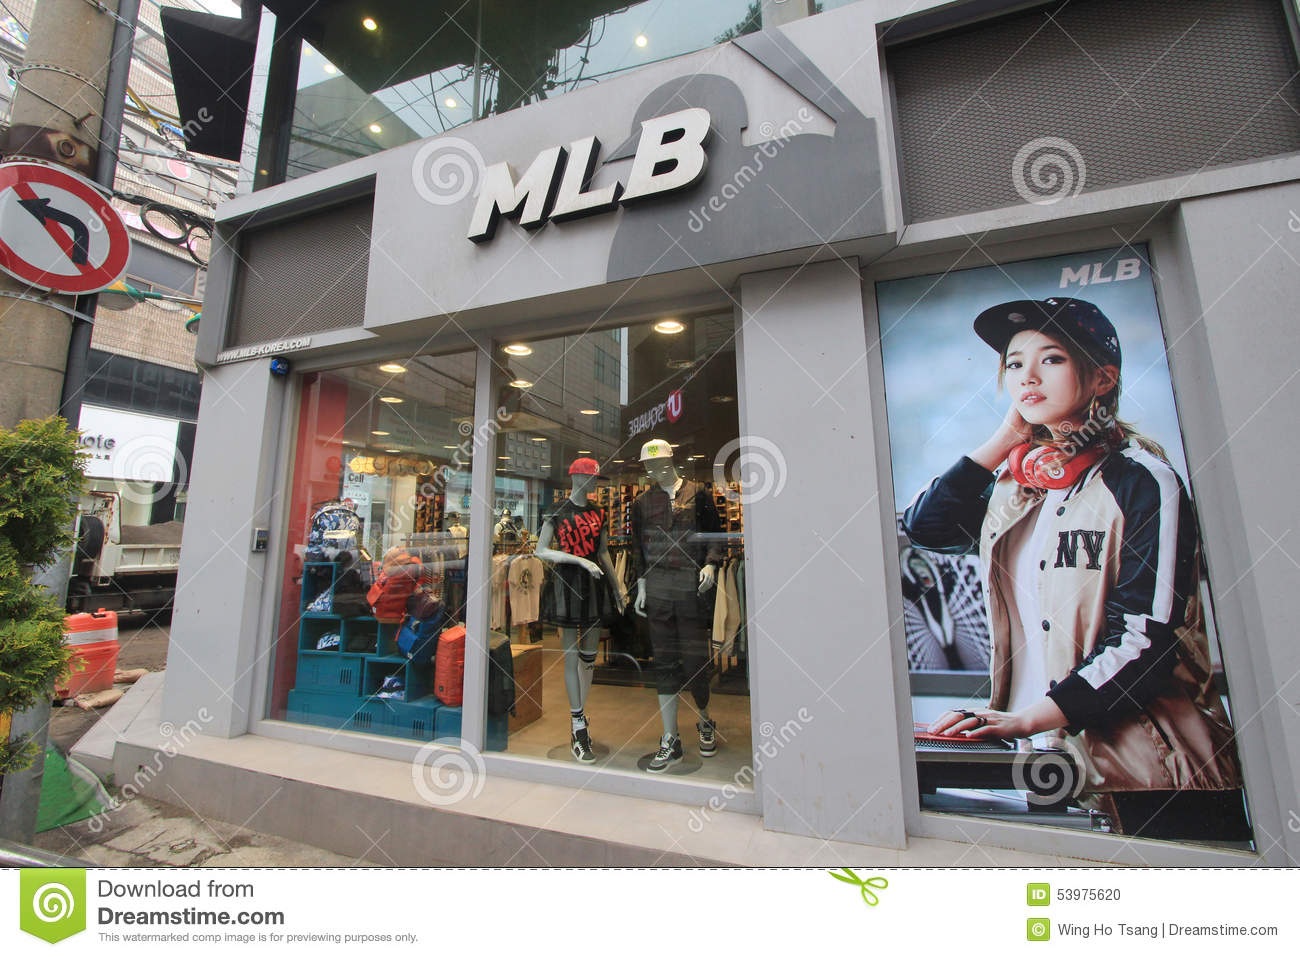 MLB Shop - Official site. Find Low Prices on MLB Jerseys. Browse Major League Apparel & More!